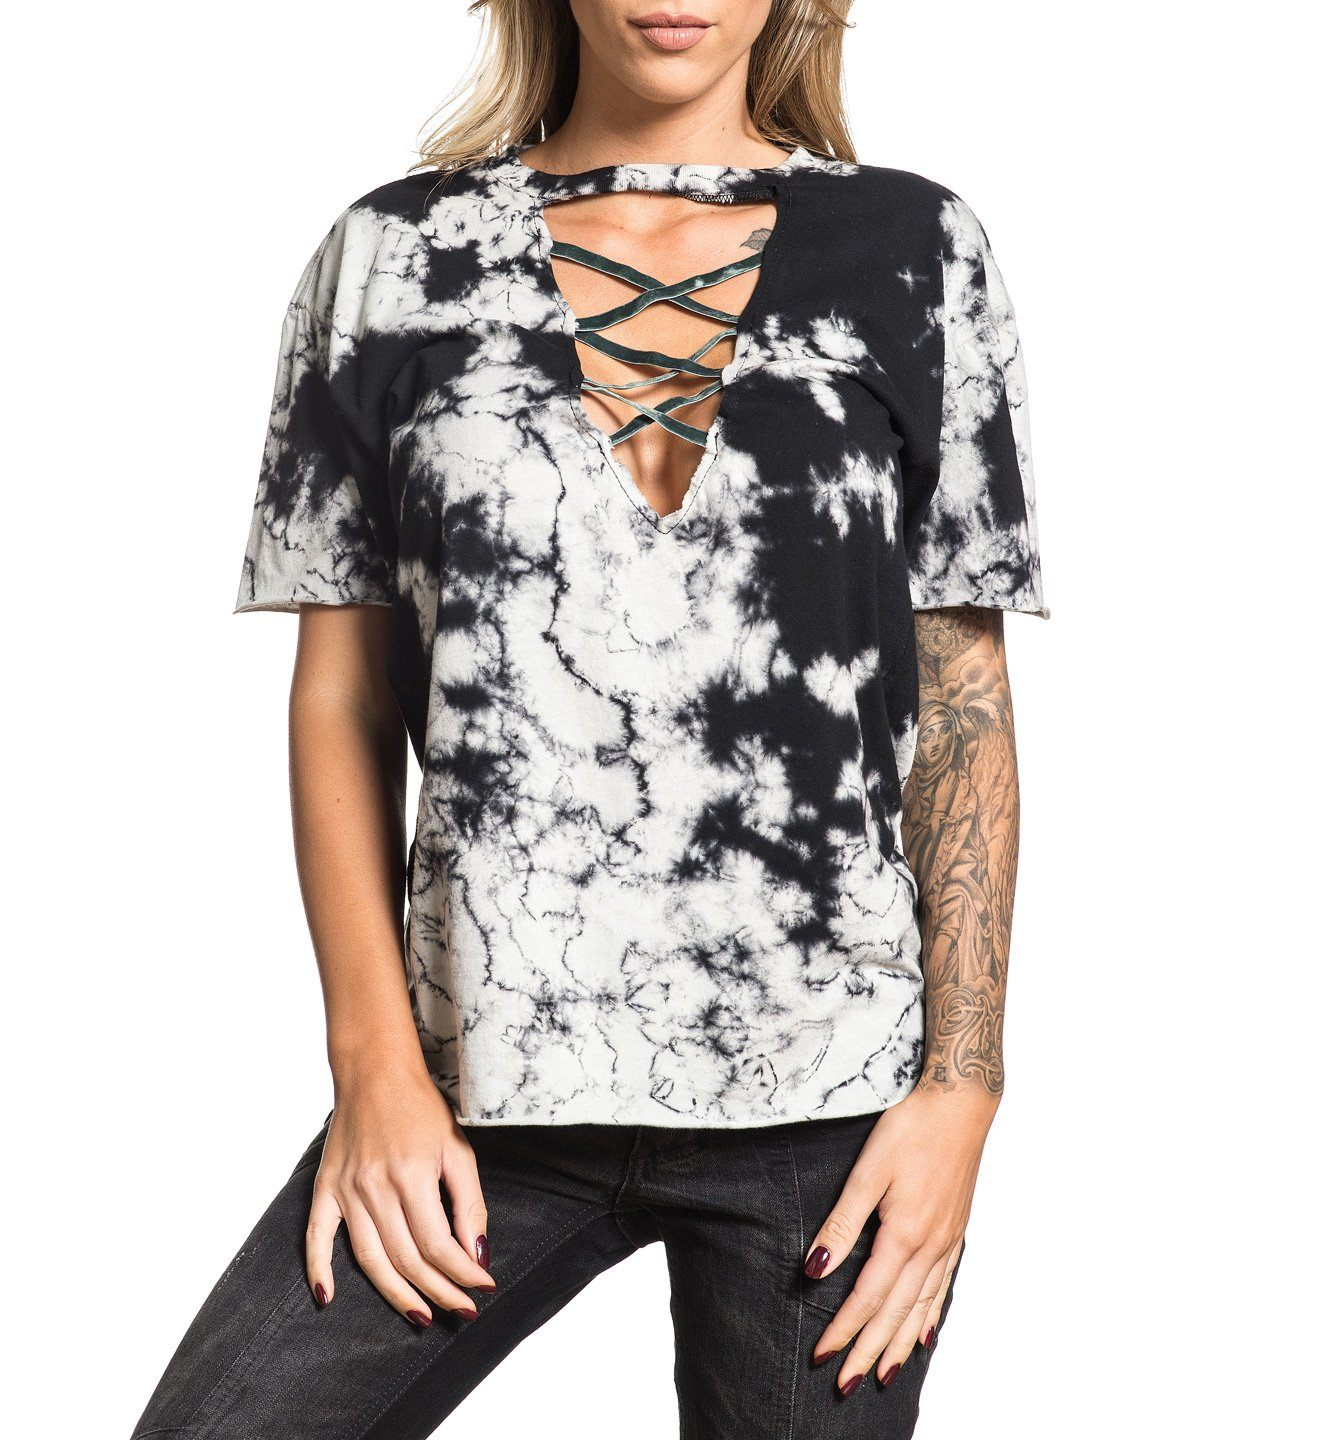 Womens Short Sleeve Tees - Standard Supply W-048